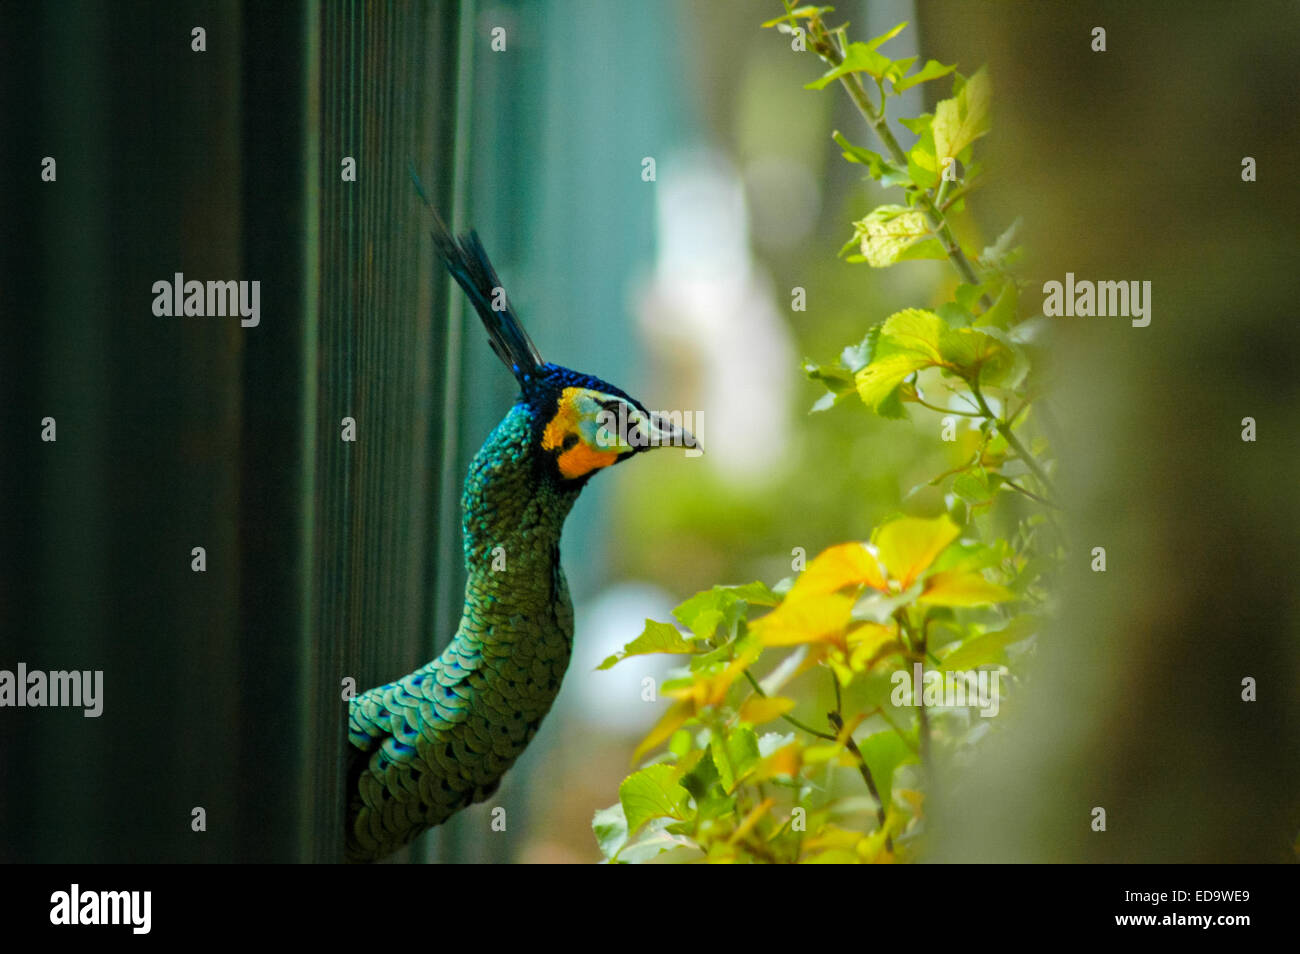 Green peafowl (Pavo muticus) releases its head out of the cage. - Stock Image